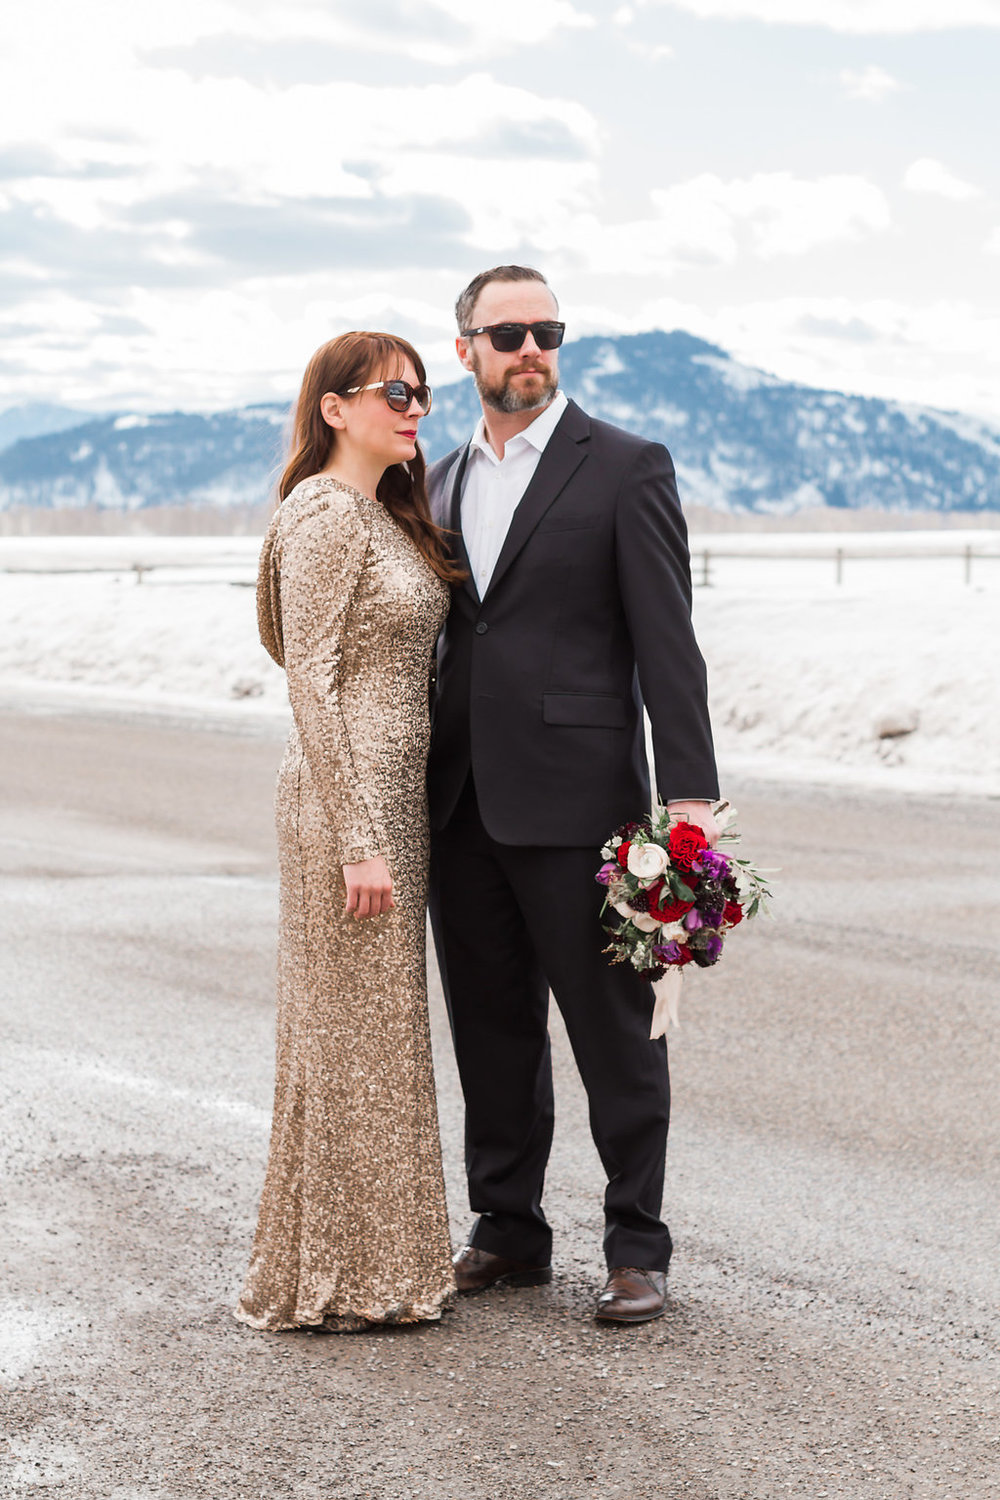 Jackson Hole Engagement Photos | Andrea Rodway Photography